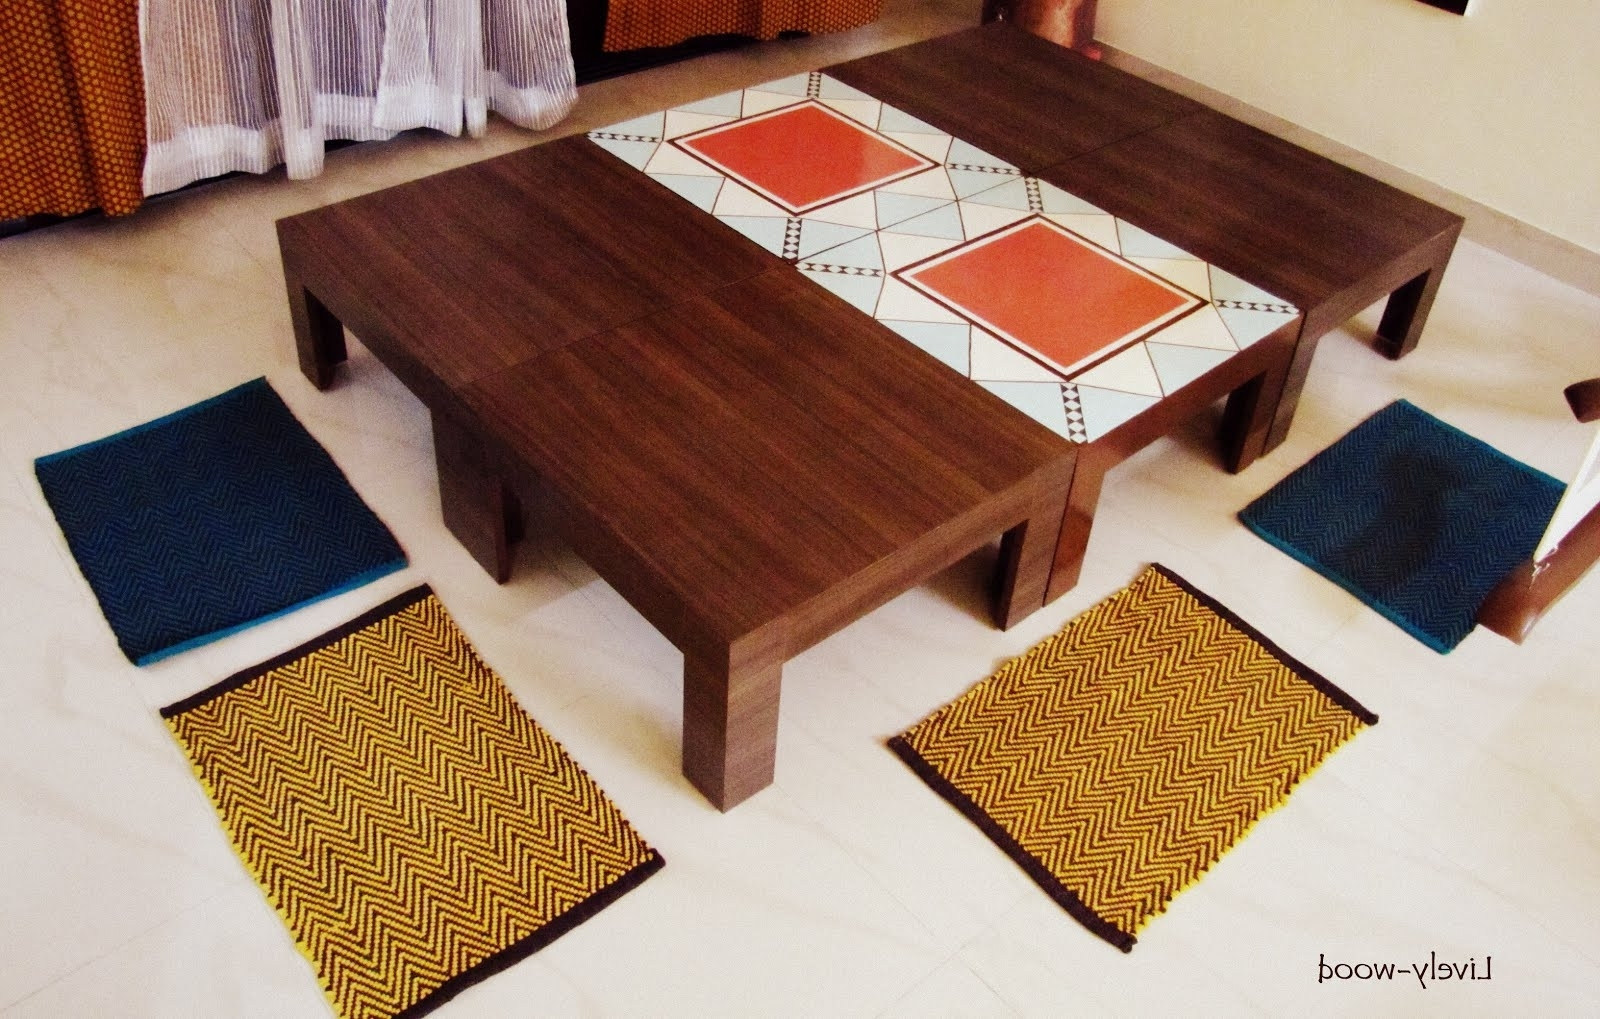 Most Recent Lively Wood: Home Of Eternal Triangles Within Indian Style Dining Tables (View 3 of 25)